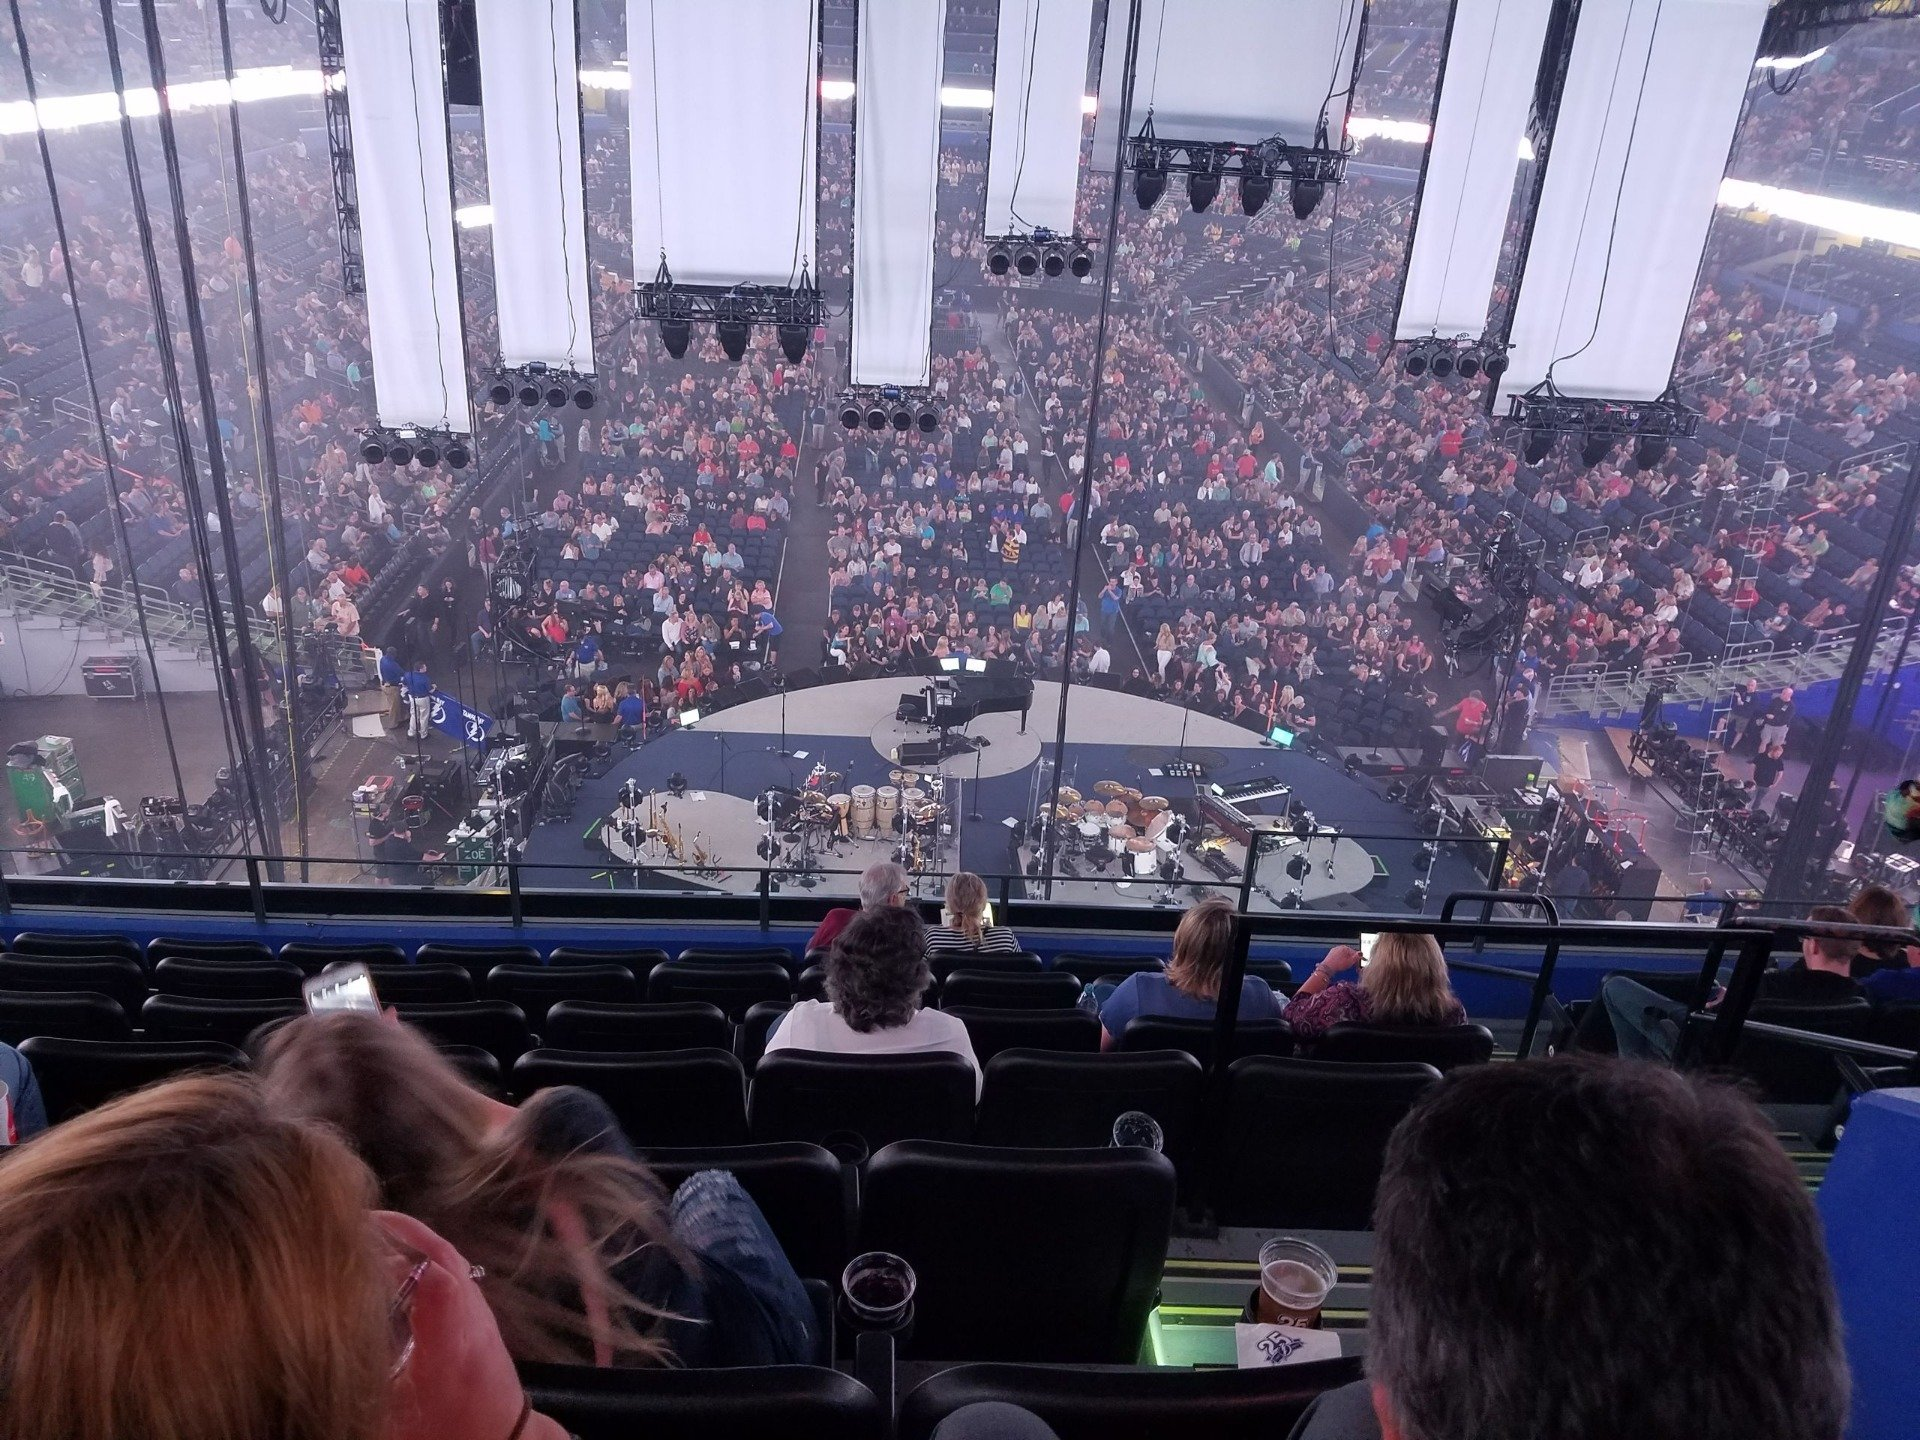 Amalie Arena Section Club 5 Row H Seat 2